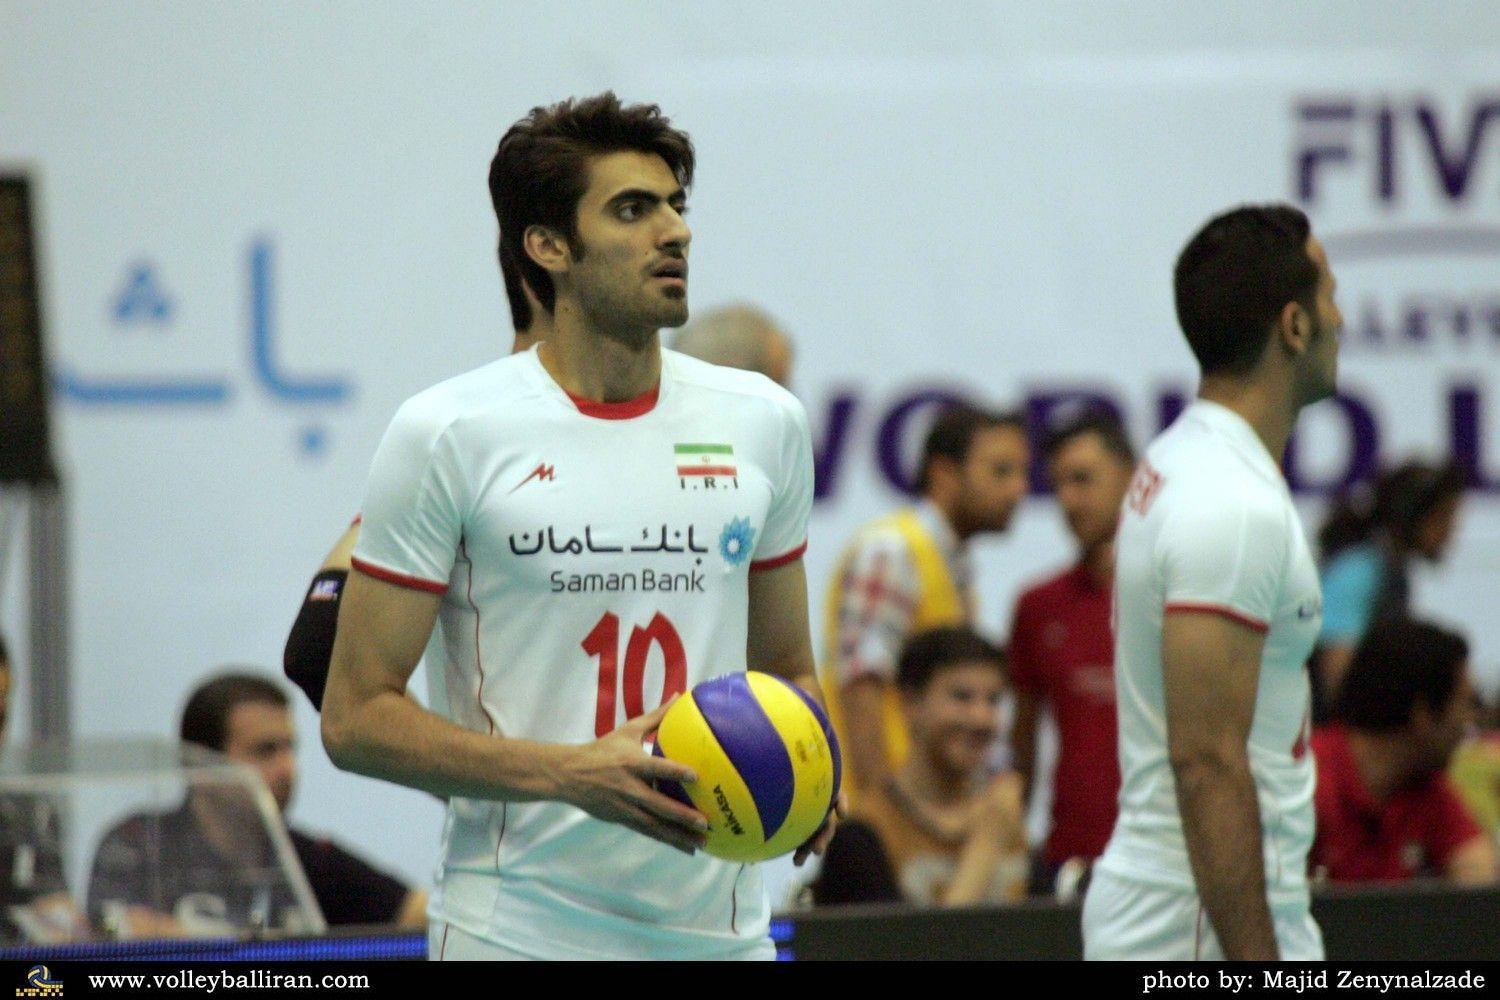 Amir Ghafour Persian امیر غفور Born 6 June 1991 In Kashan Is A Volleyball Player From Iran Who Plays As An Opposite F Volleyball Water Polo Sports Jersey